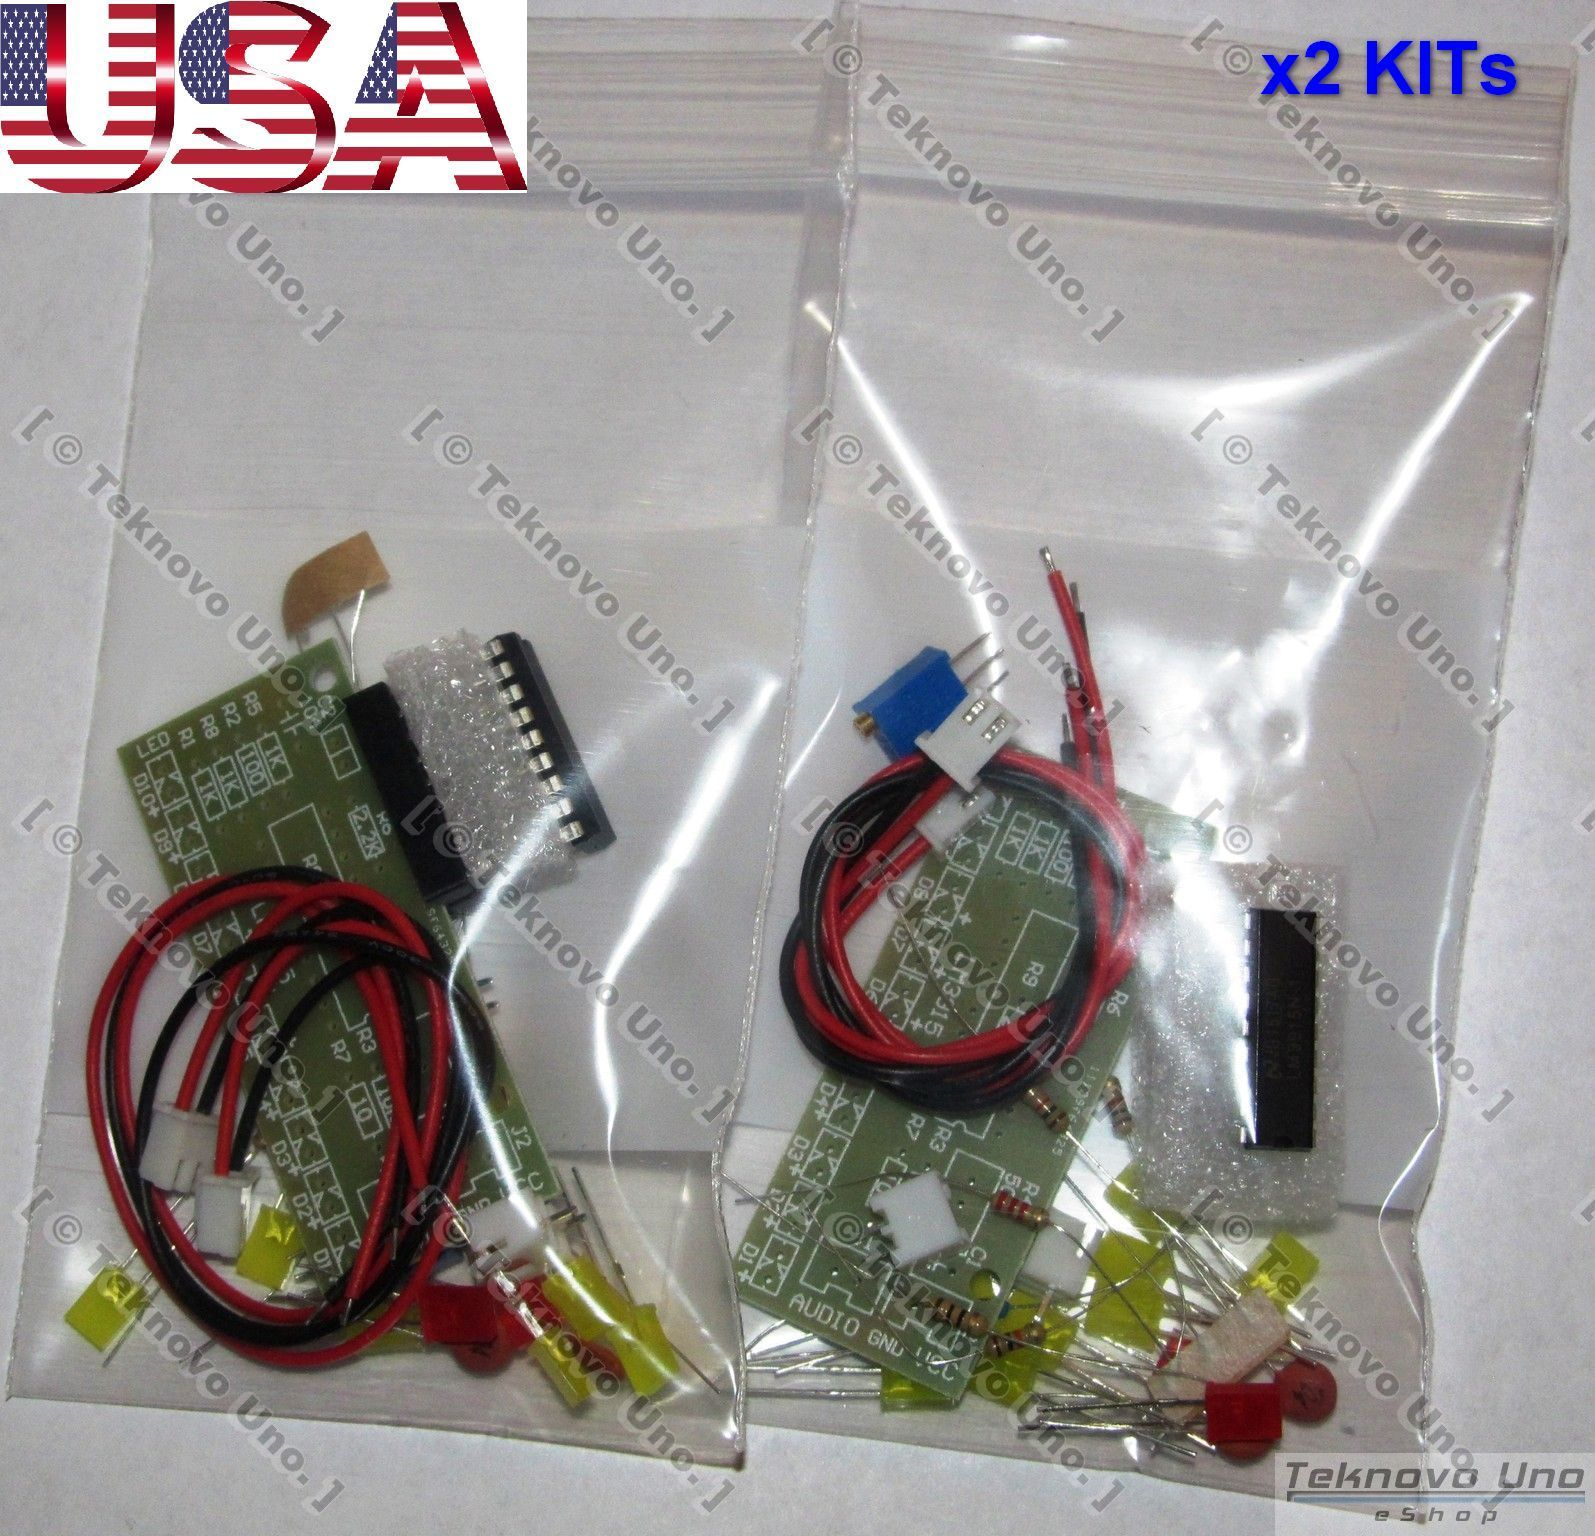 x2 DIY KITs Audio Level Meter LM3915 [LED VU Meter] FULL Parts - USA